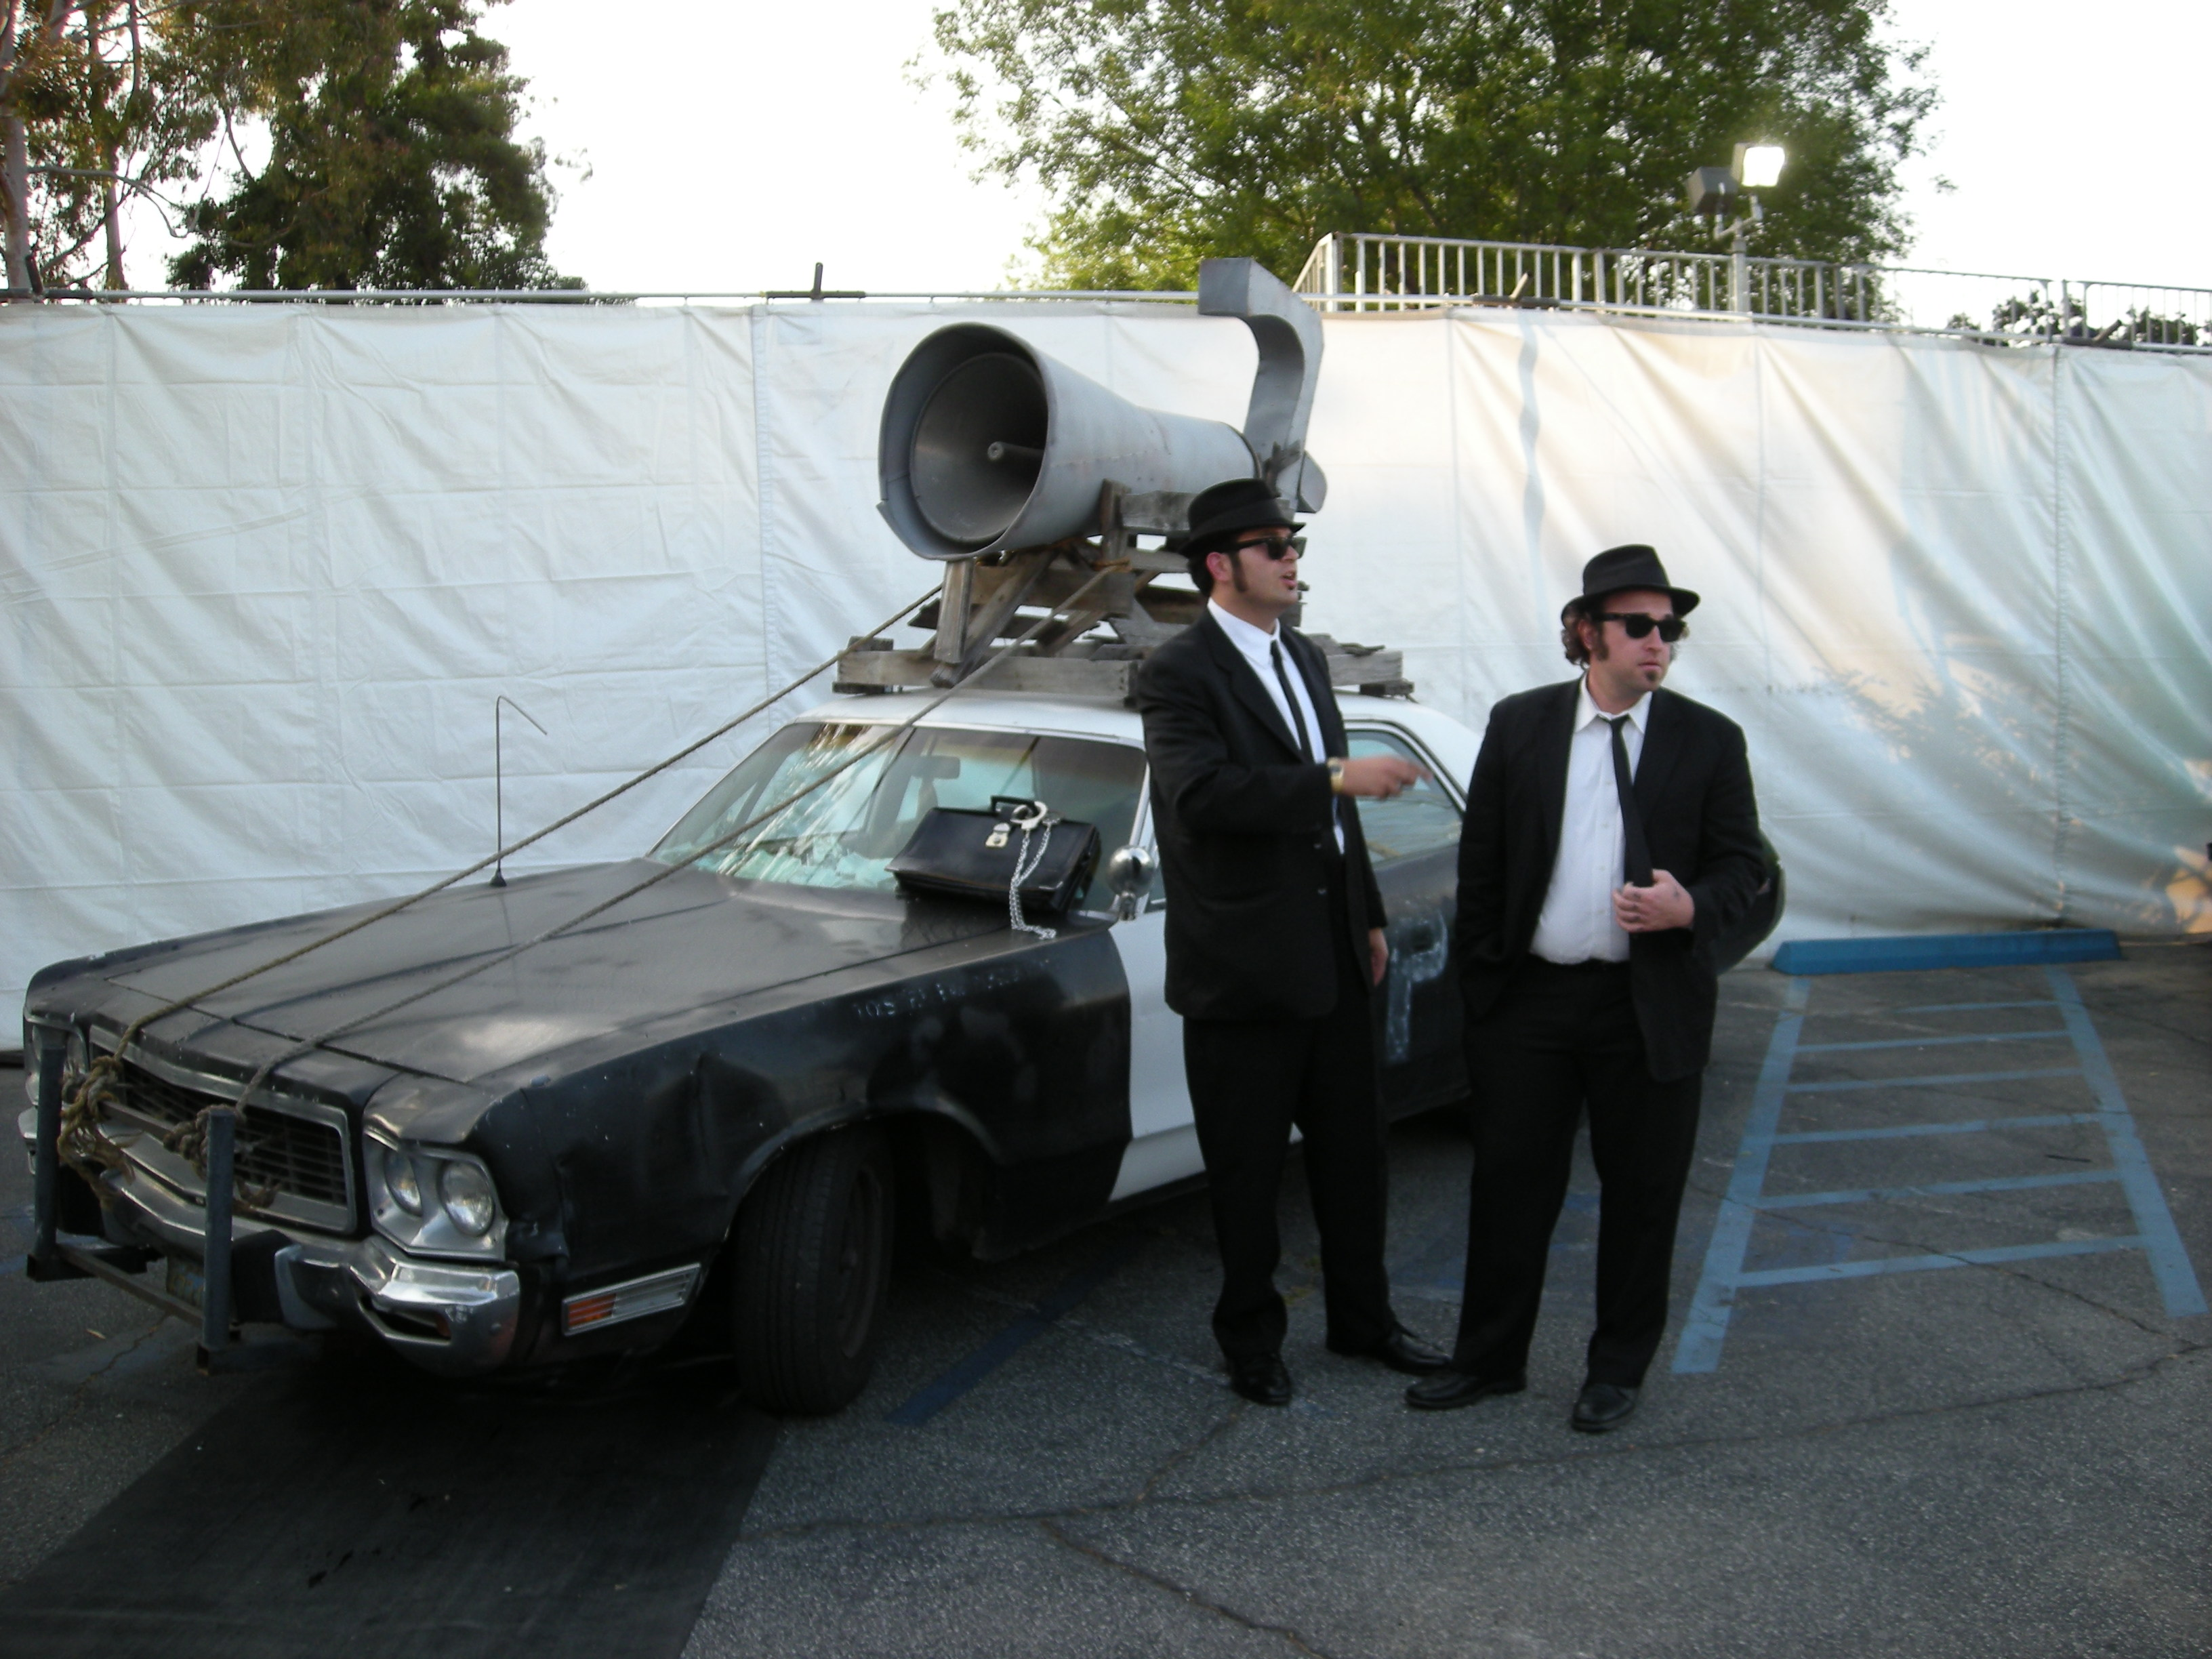 Blues Brothers Star Car Central Famous Movie Amp Tv Car